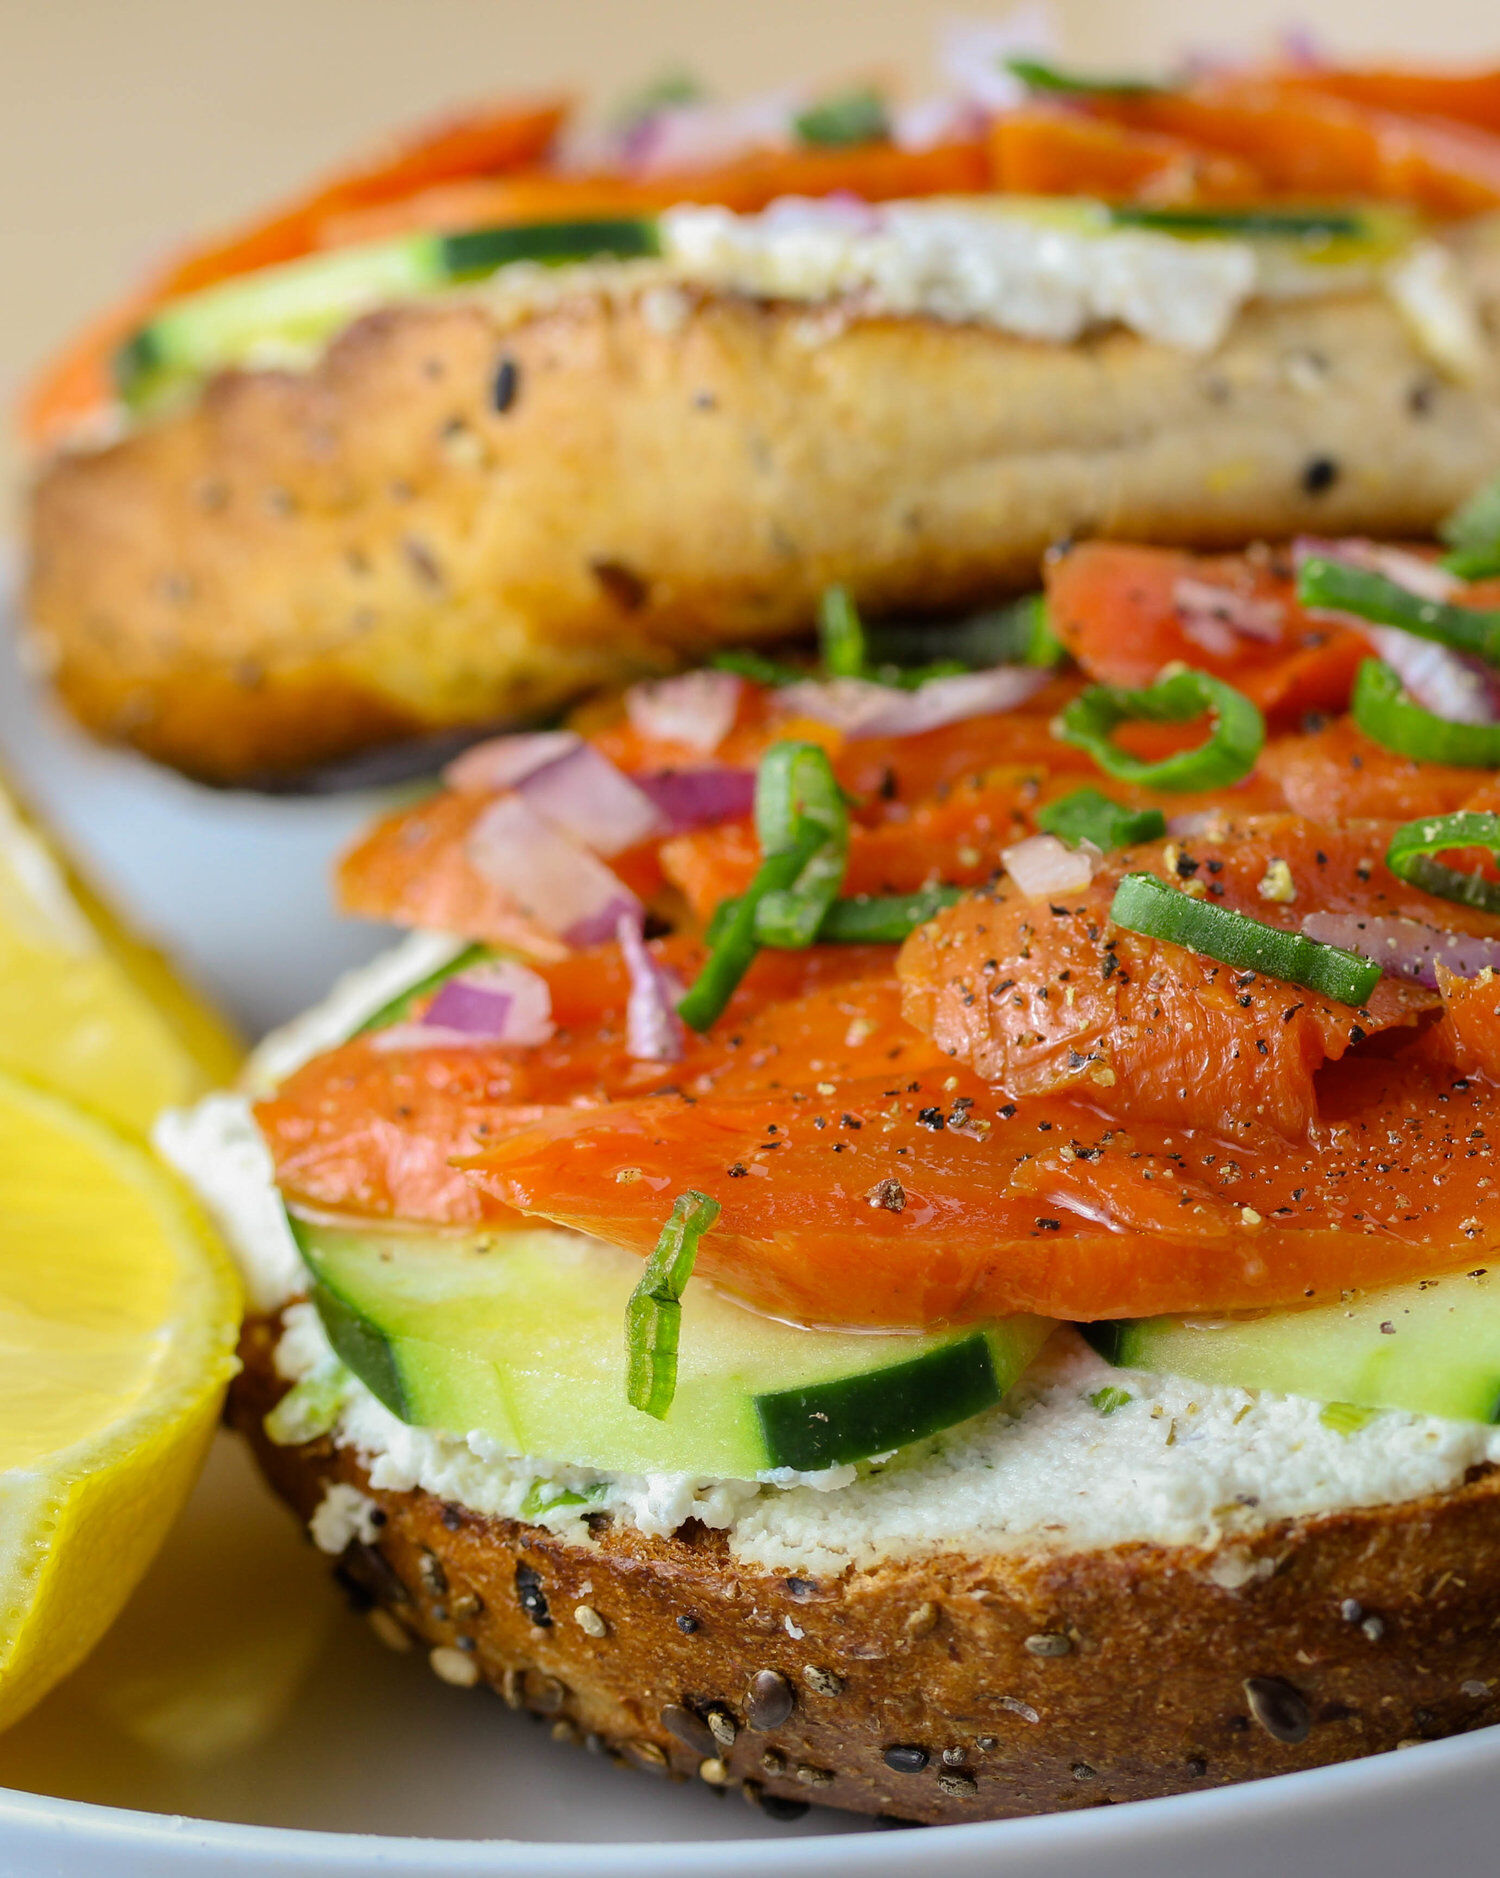 Carrot Lox Sarah S Vegan Kitchen